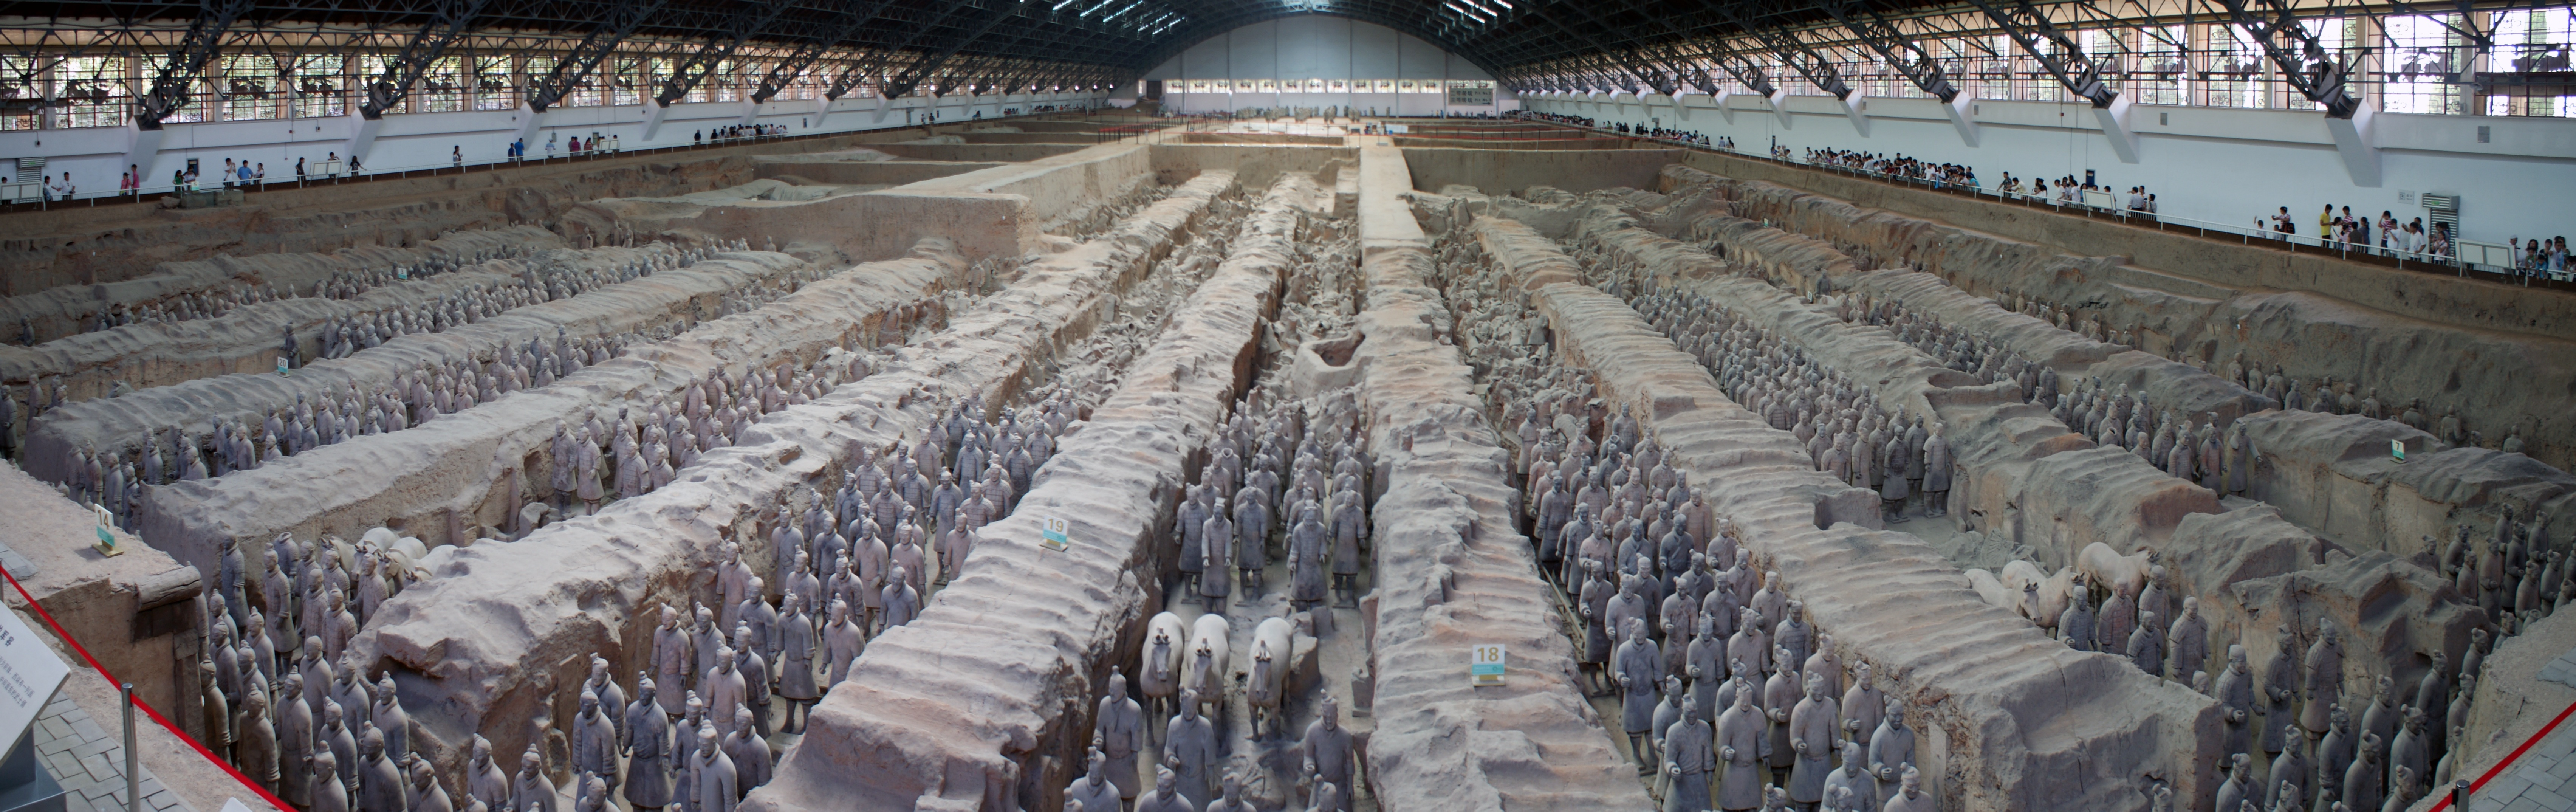 The Terracotta Army Of Qin Shi Huang And The Projection Of